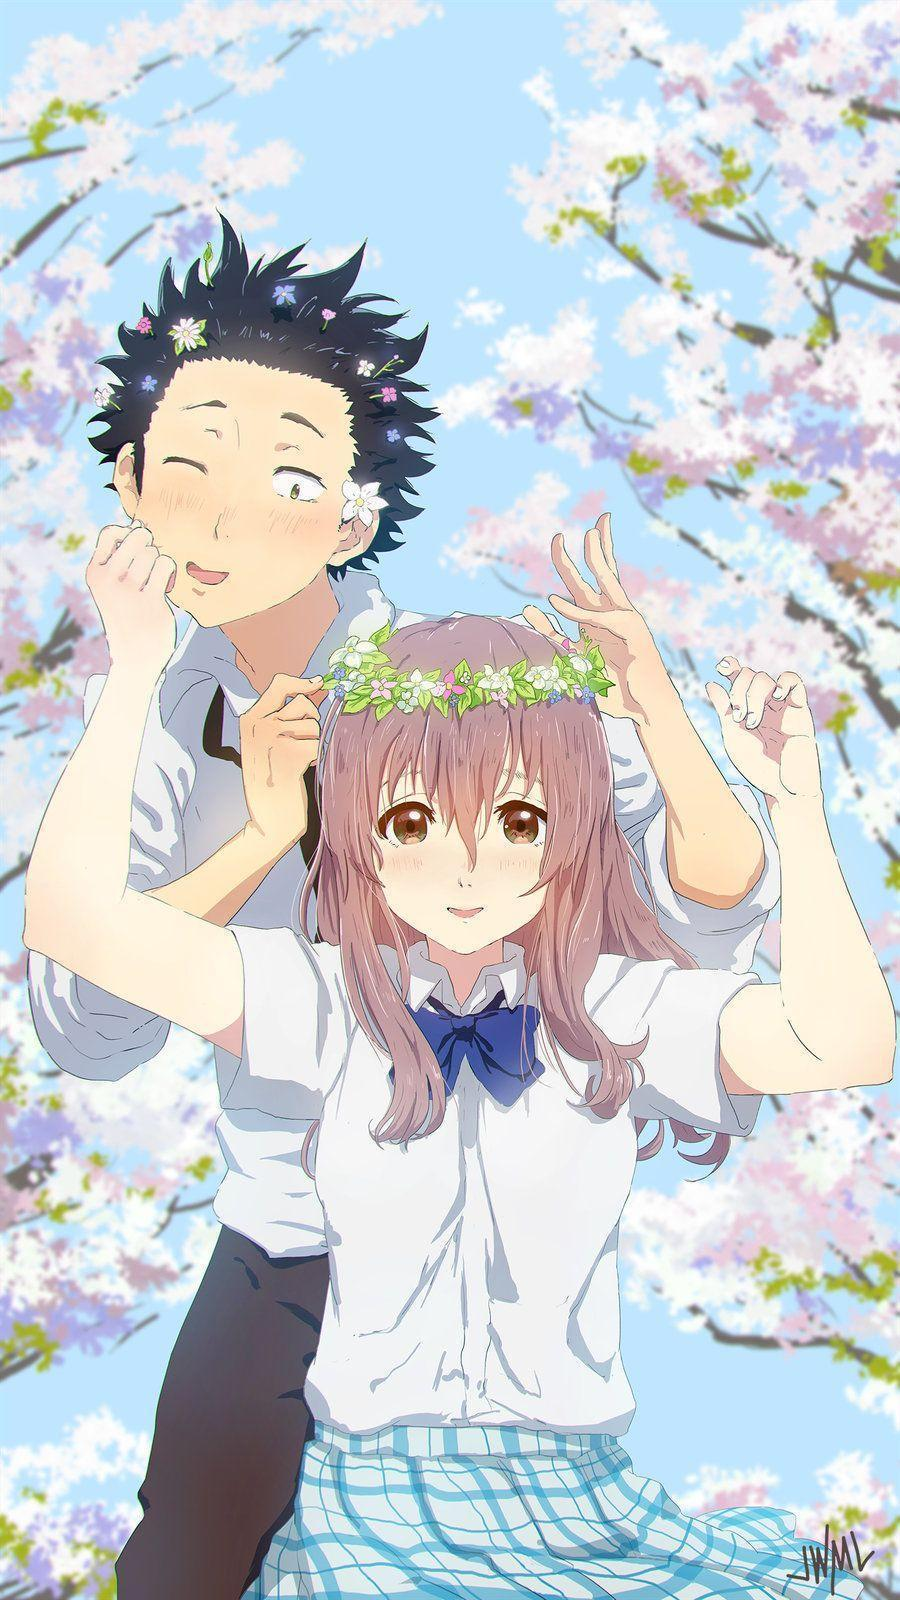 Koe No Katachi Wallpaper Hd Posted By Ethan Cunningham